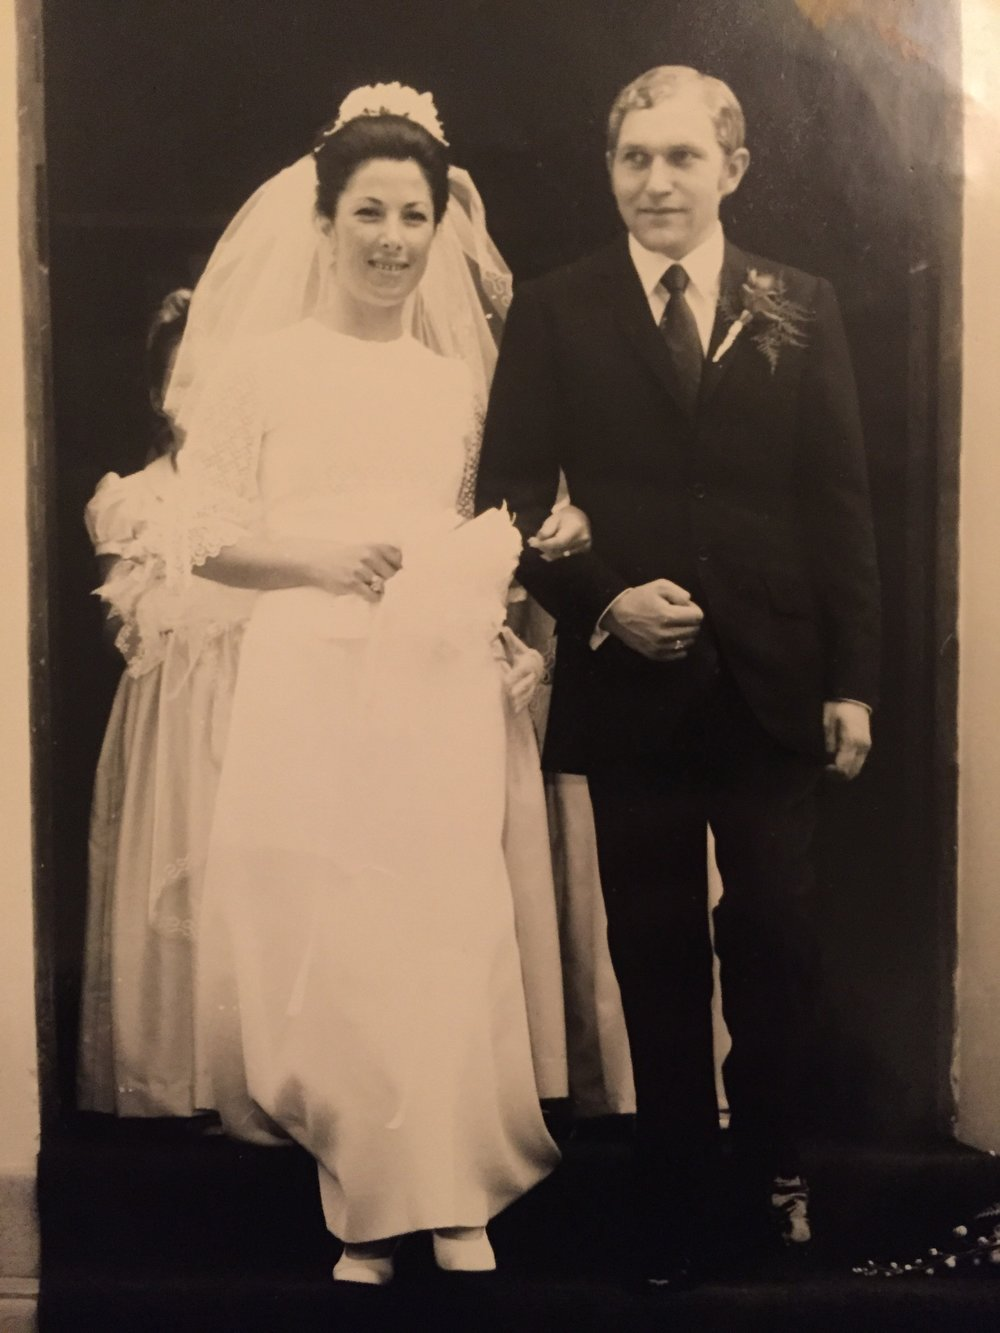 Mum & Dad's wedding in Rabat, Morocco, 1971